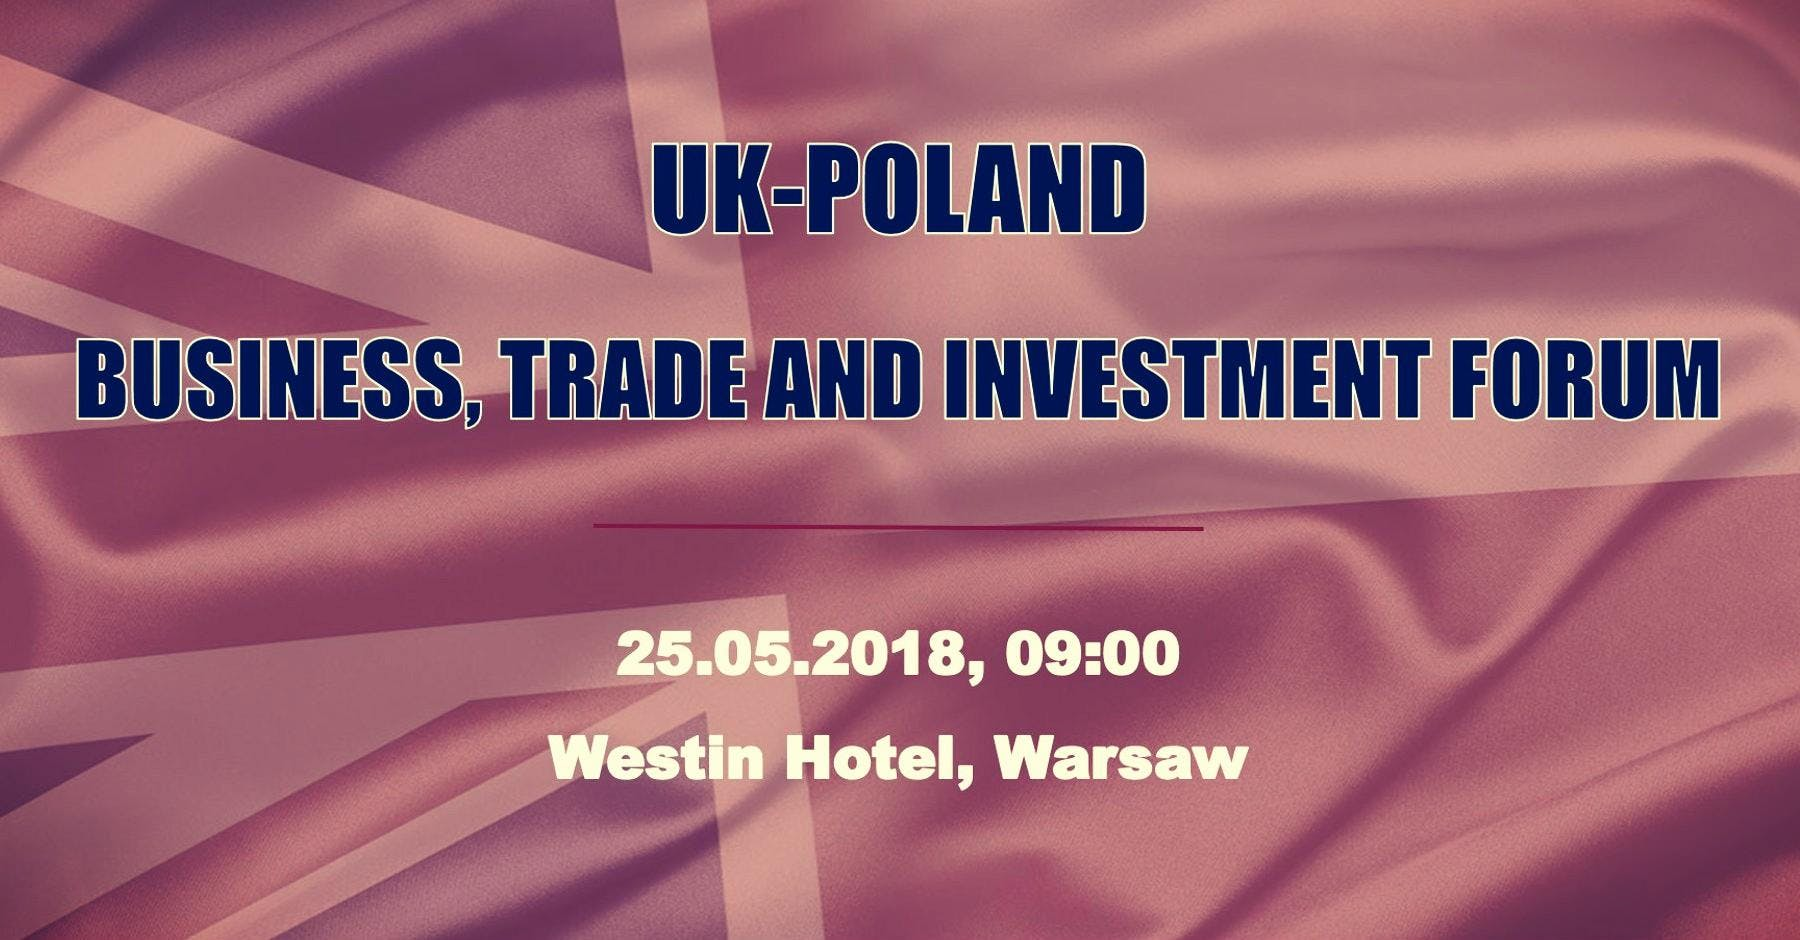 UK-Poland Business, Trade and Investment Foru